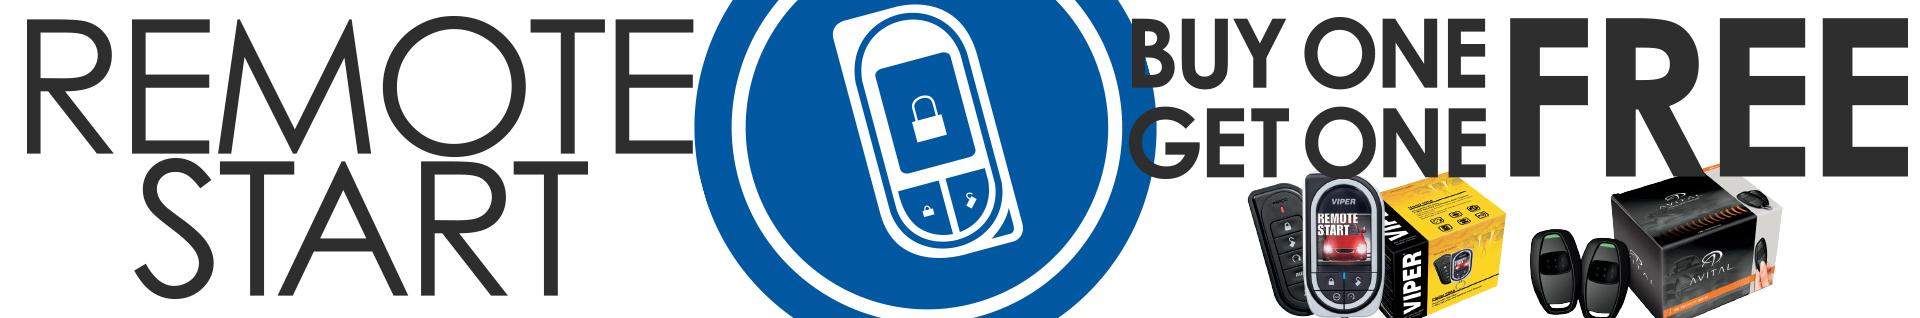 Buy One Get One Free Remote Start